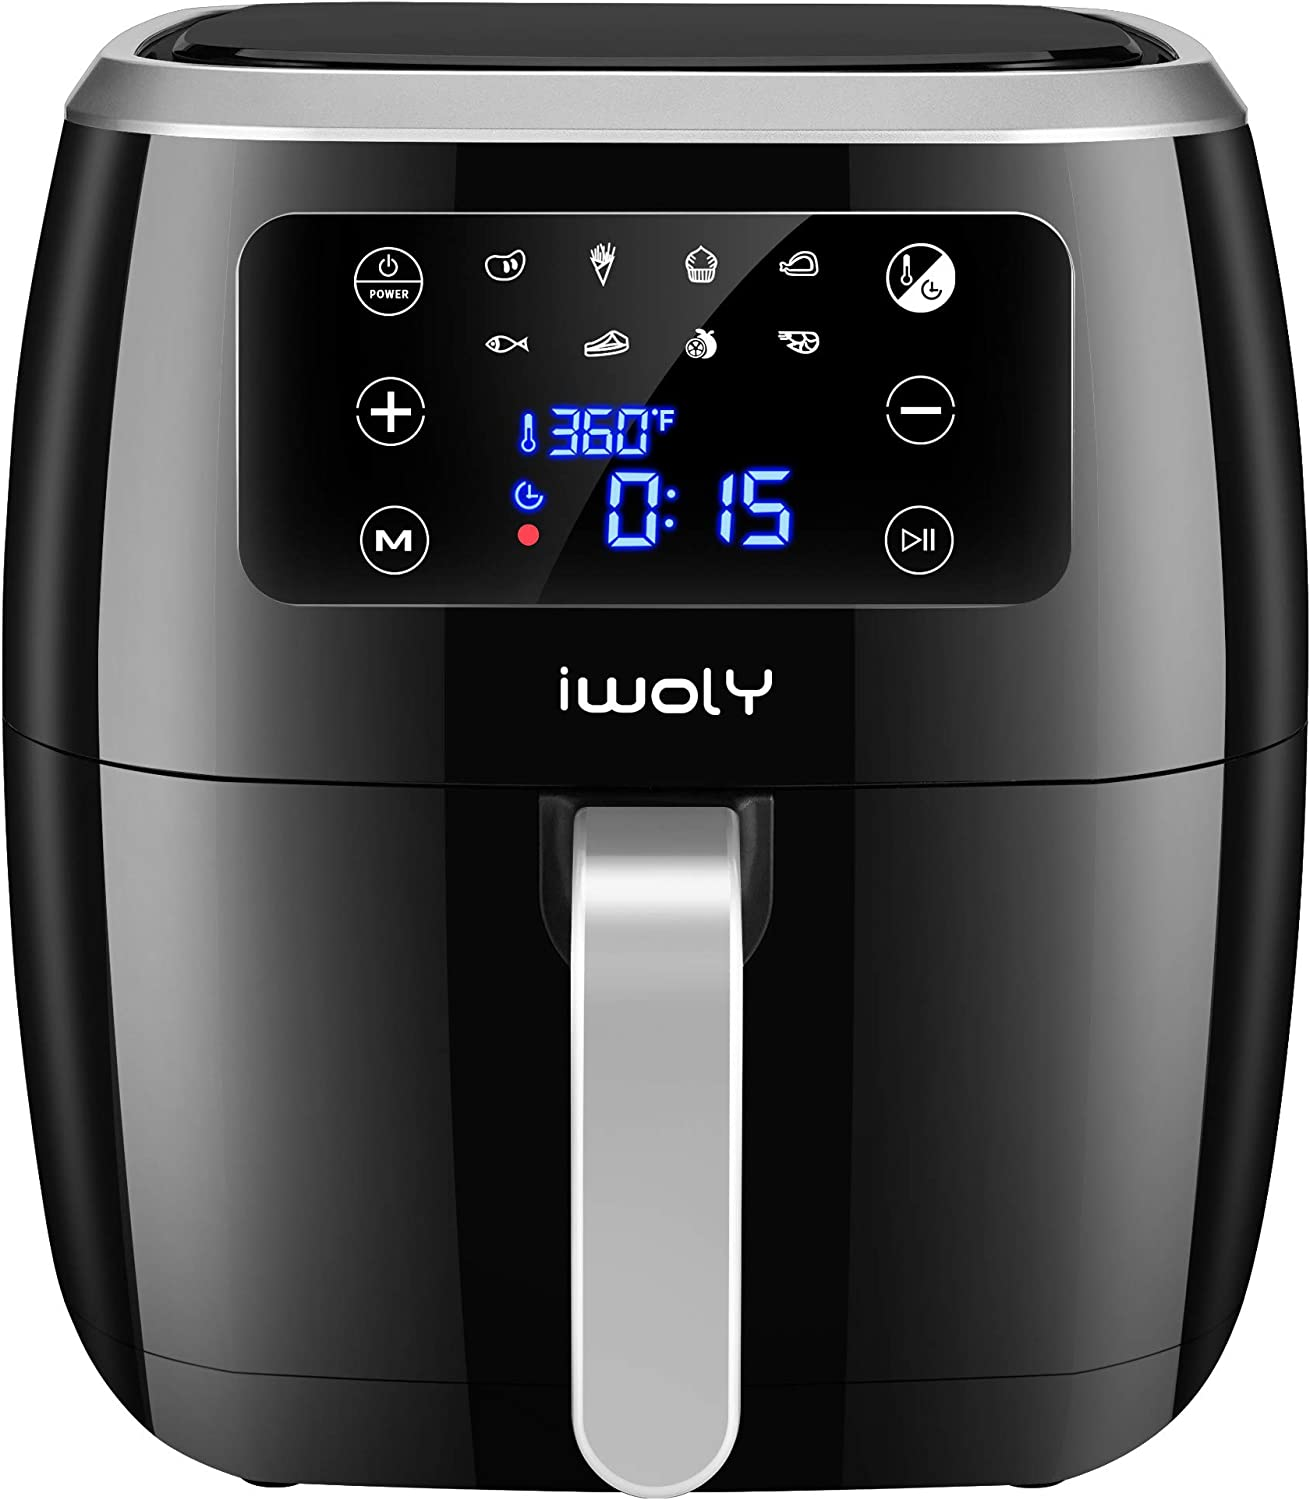 iwoly Air Fryer, 6.3QT Electric Hot Air Fryers Oven 1700W Oilless Cooker, LED Touch Digital Screen with 8 Presets, Nonstick Basket for Oil Free Roasting/Baking/Grilling